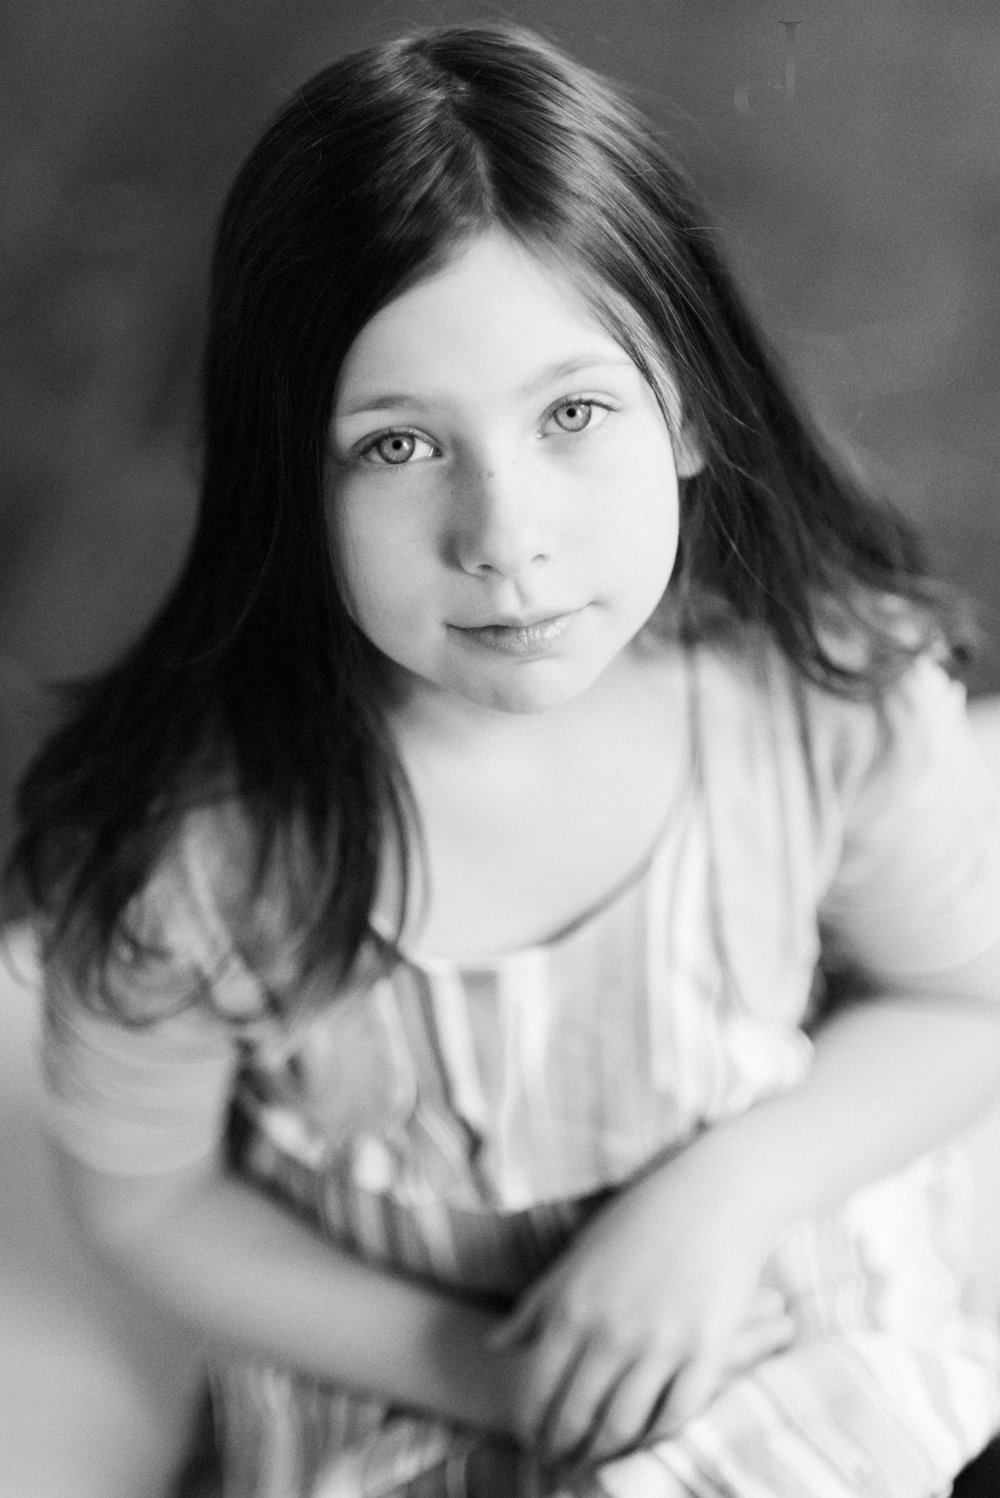 childrensportrait.jendeanphotography7395-Edit.jpg